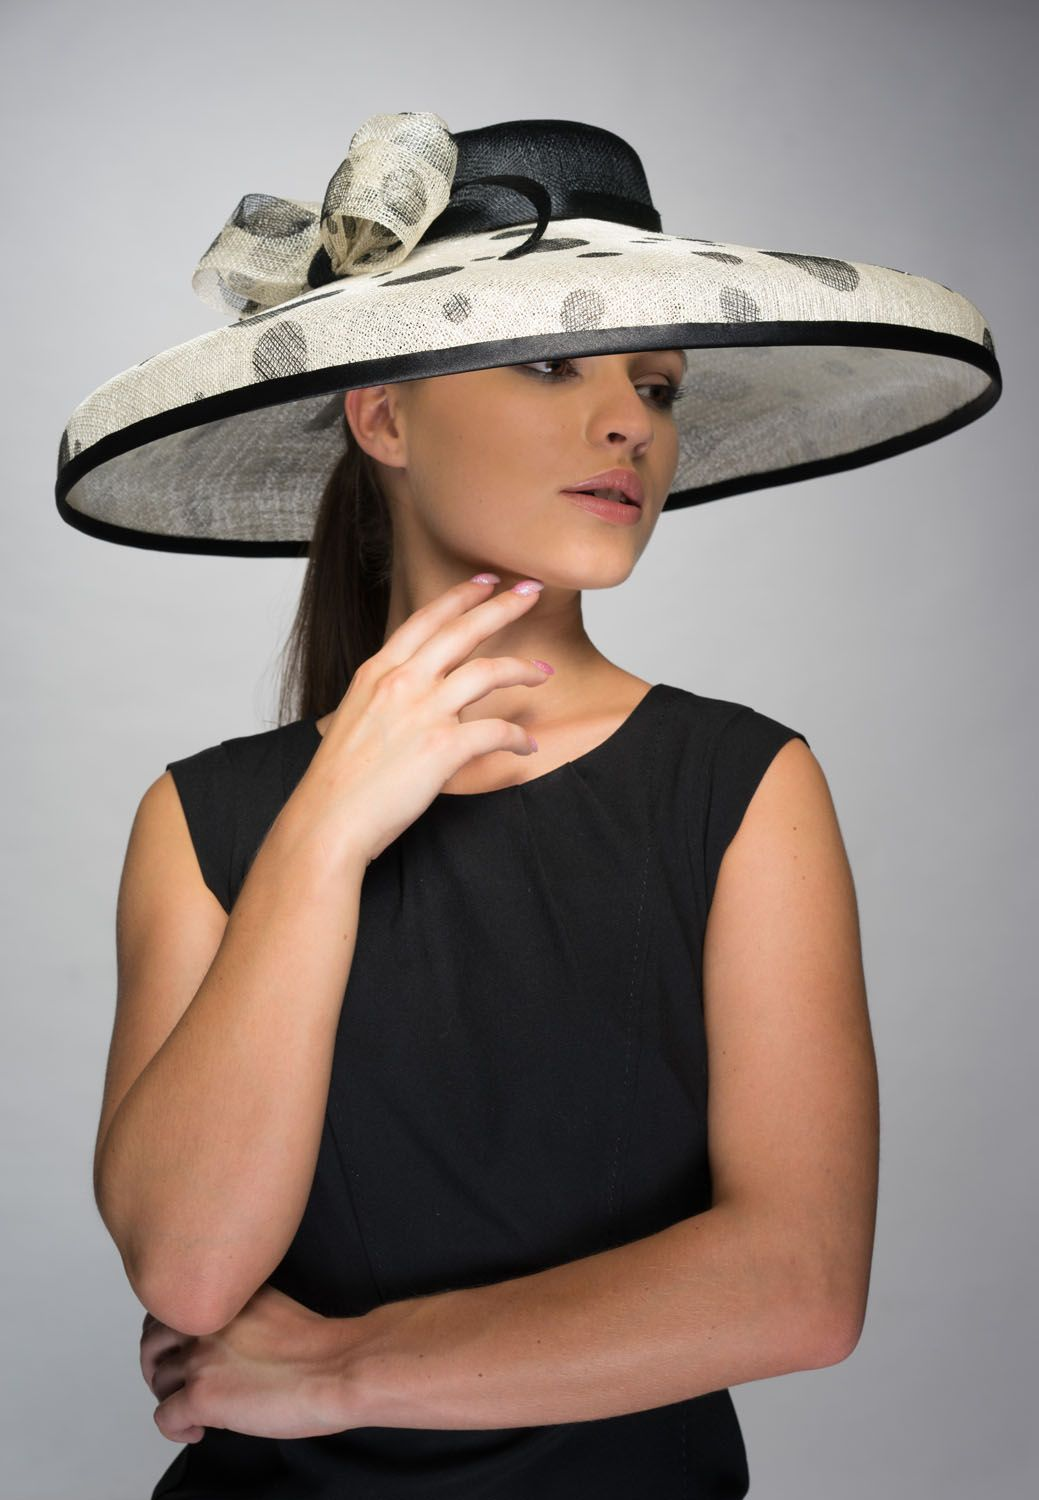 73fa091bb57ef 'Audrey Hepburn' style large hat. Perfect for weddings or a day at Royal  Ascot. Adrienne Henry Millinery. '